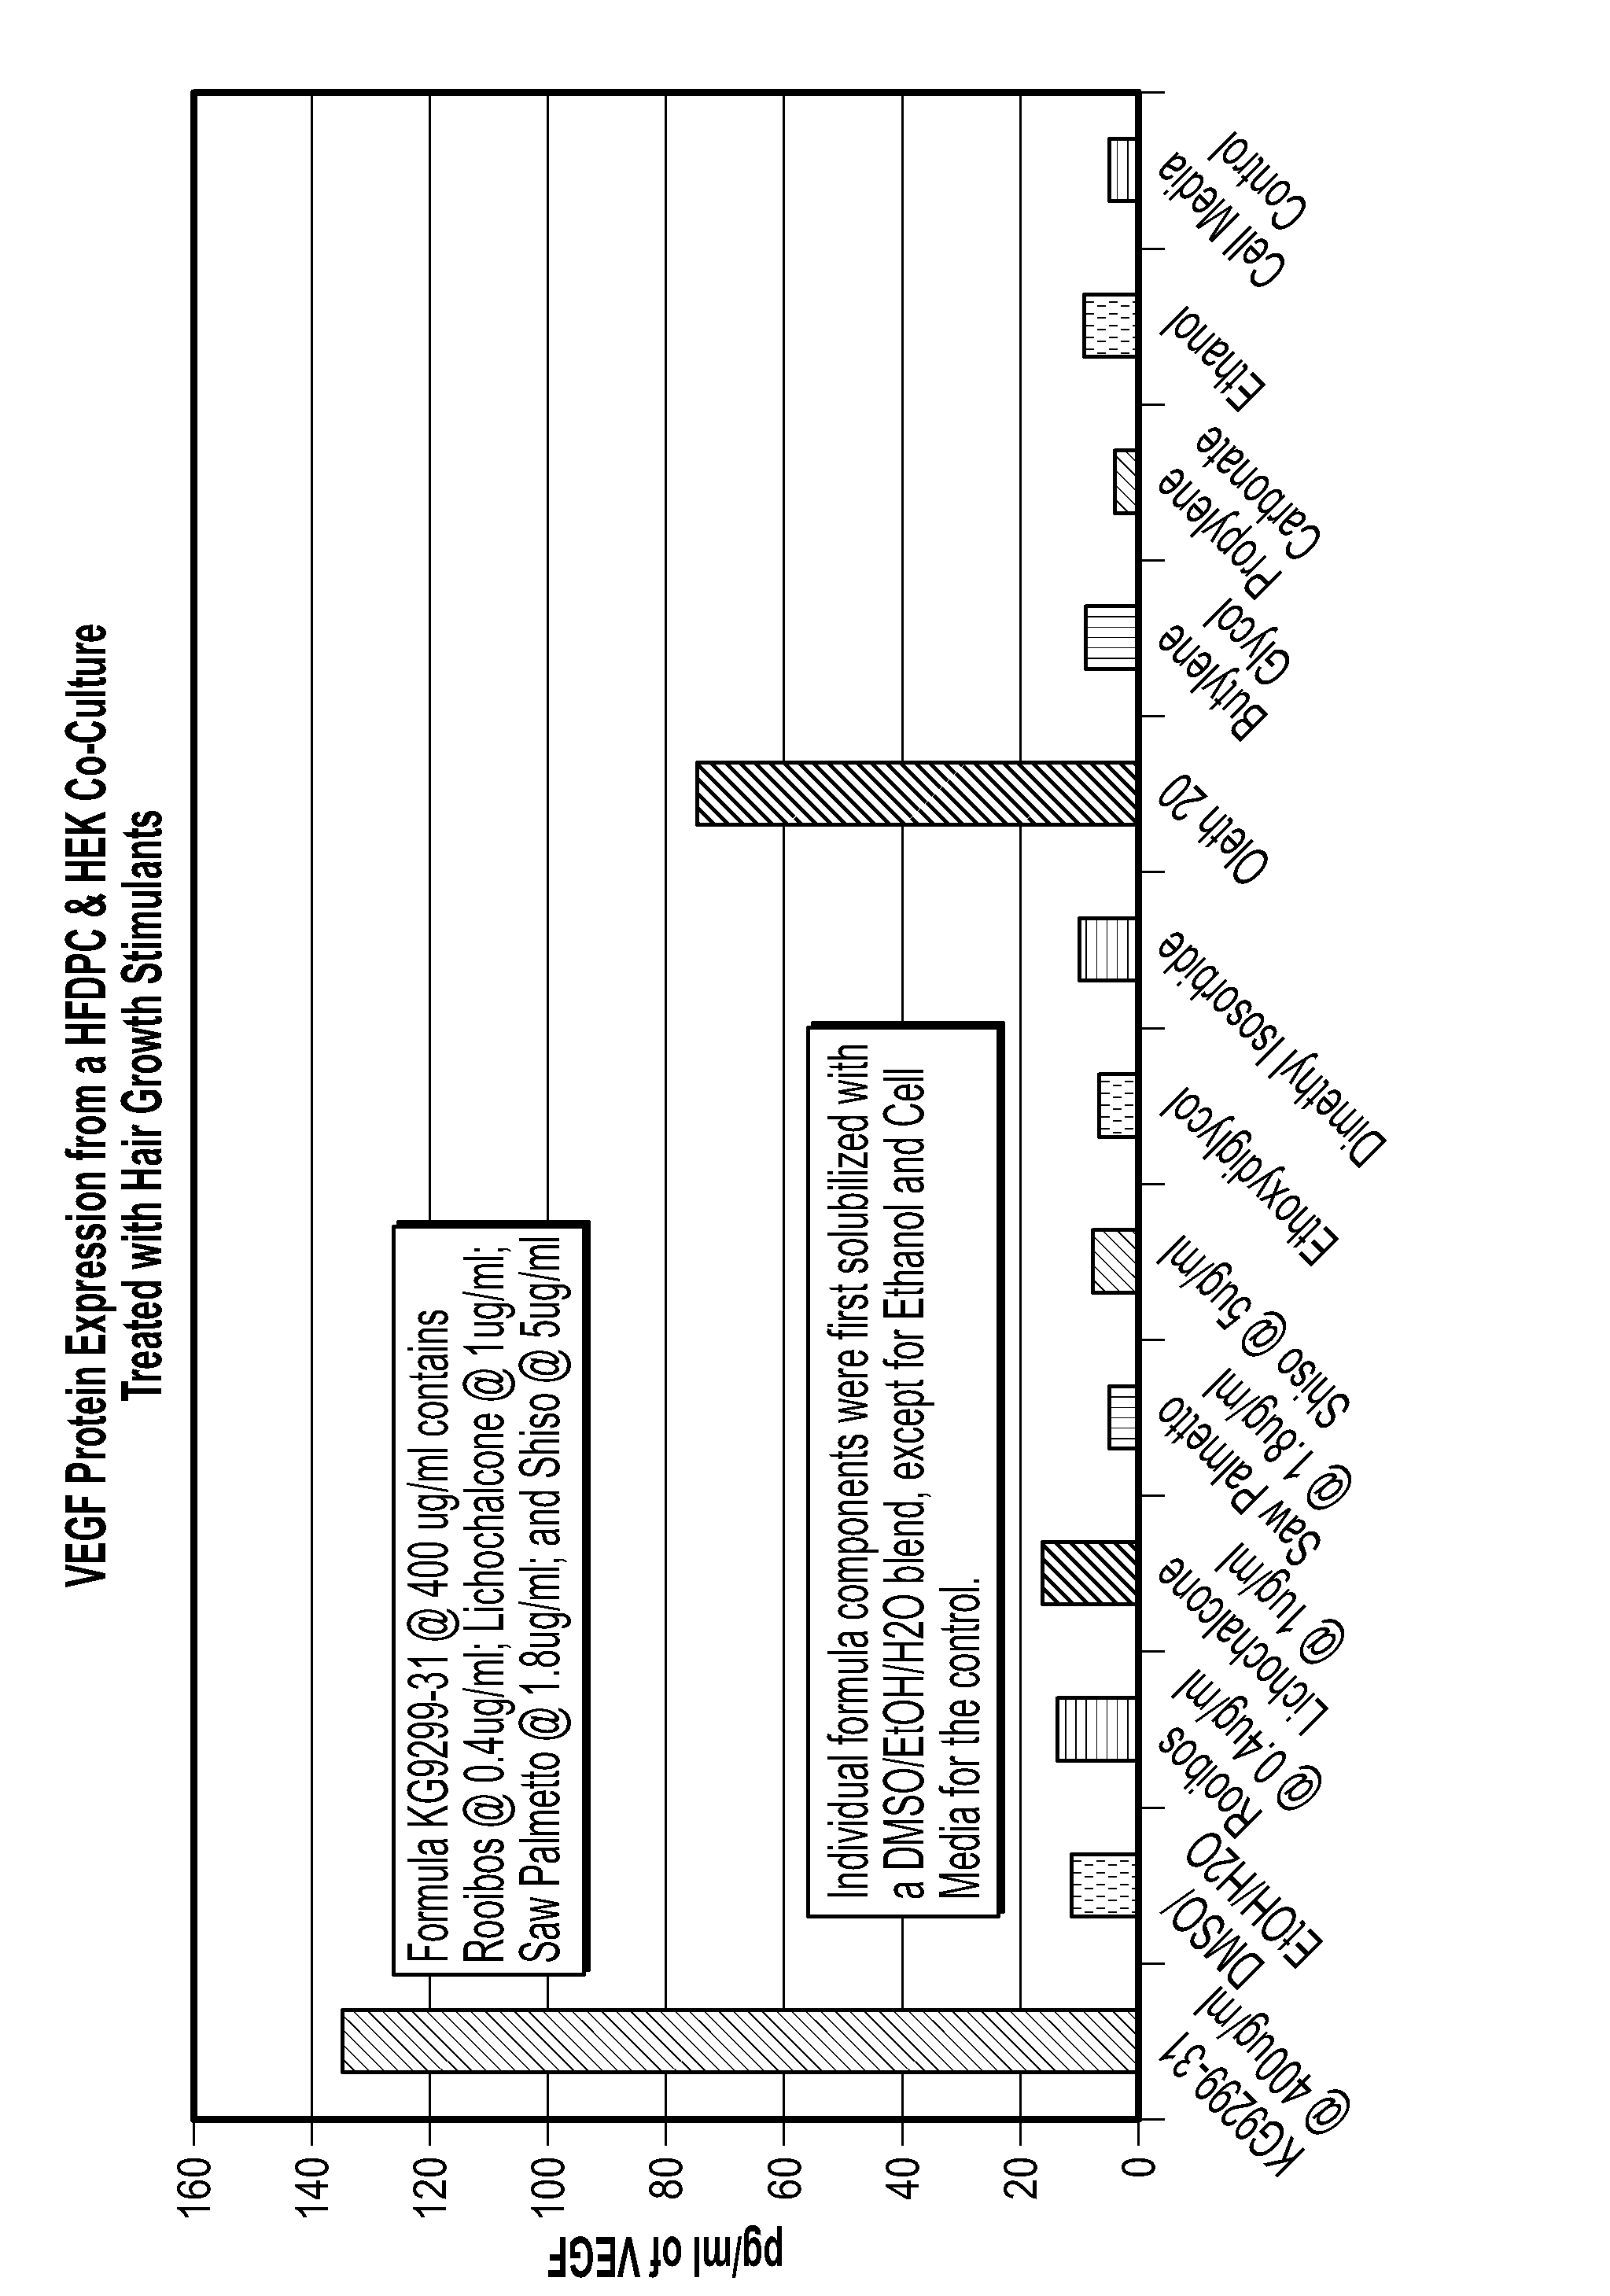 Brevet US8197865 - Methods and compositions for modulating